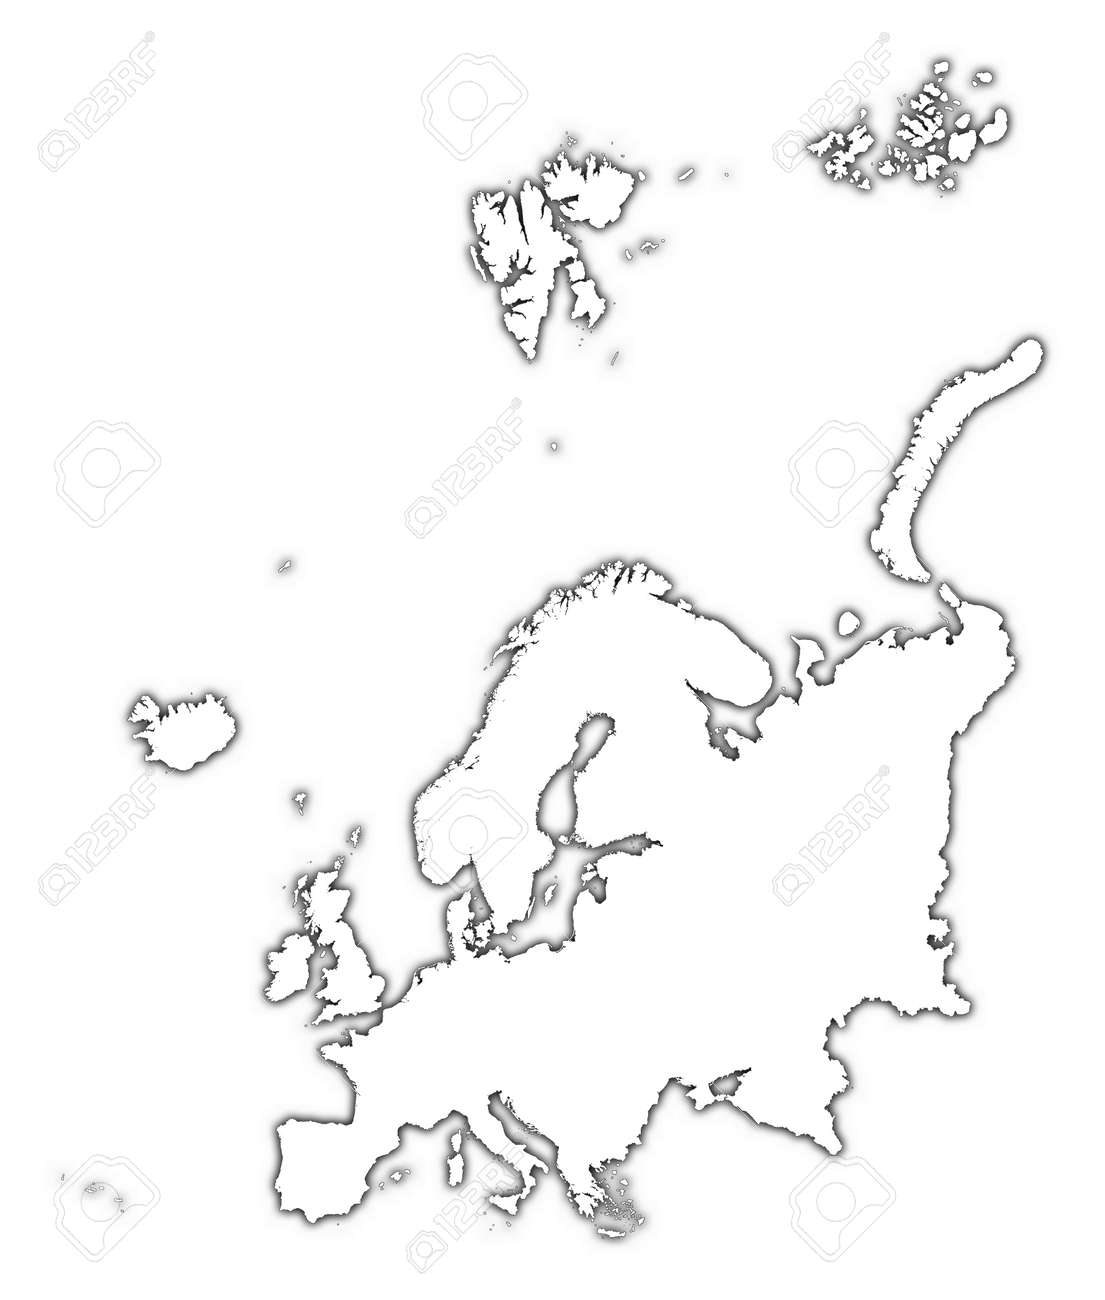 Europe Outline Map With Shadow Detailed Mercator Projection Stock